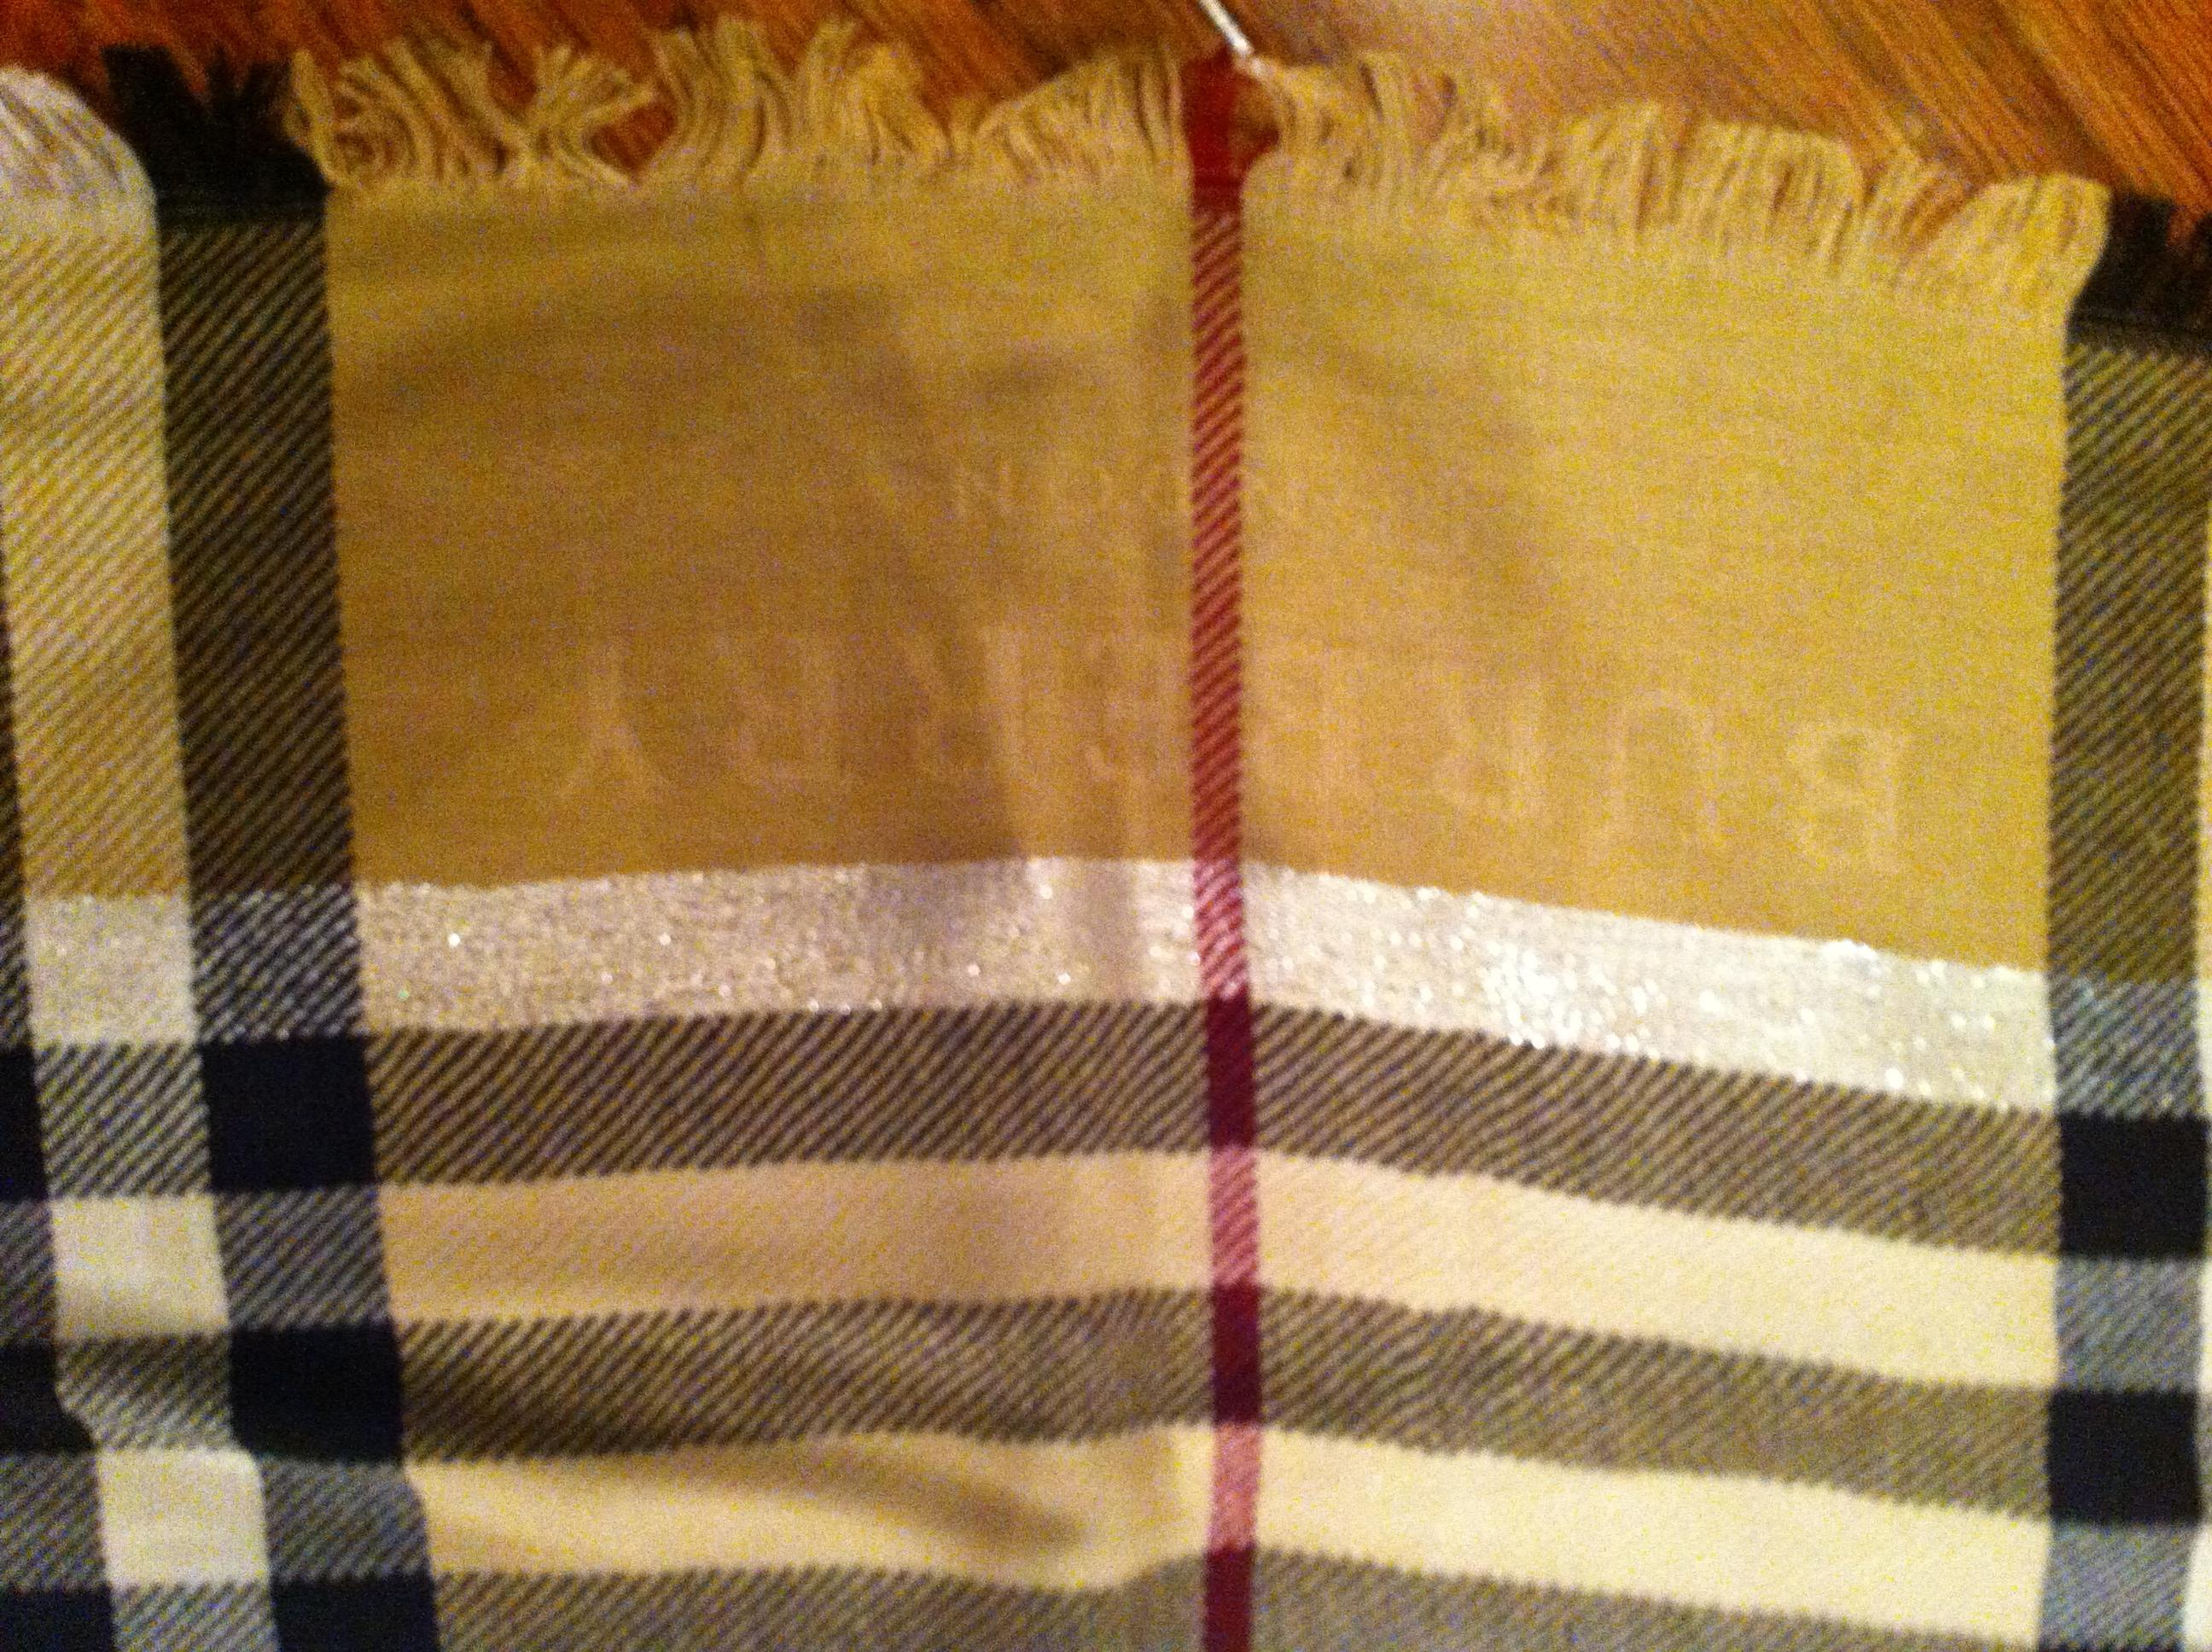 ... discount code for burberry plaid glittery large scarf wrap da7b3 024b2 62cb352378c99